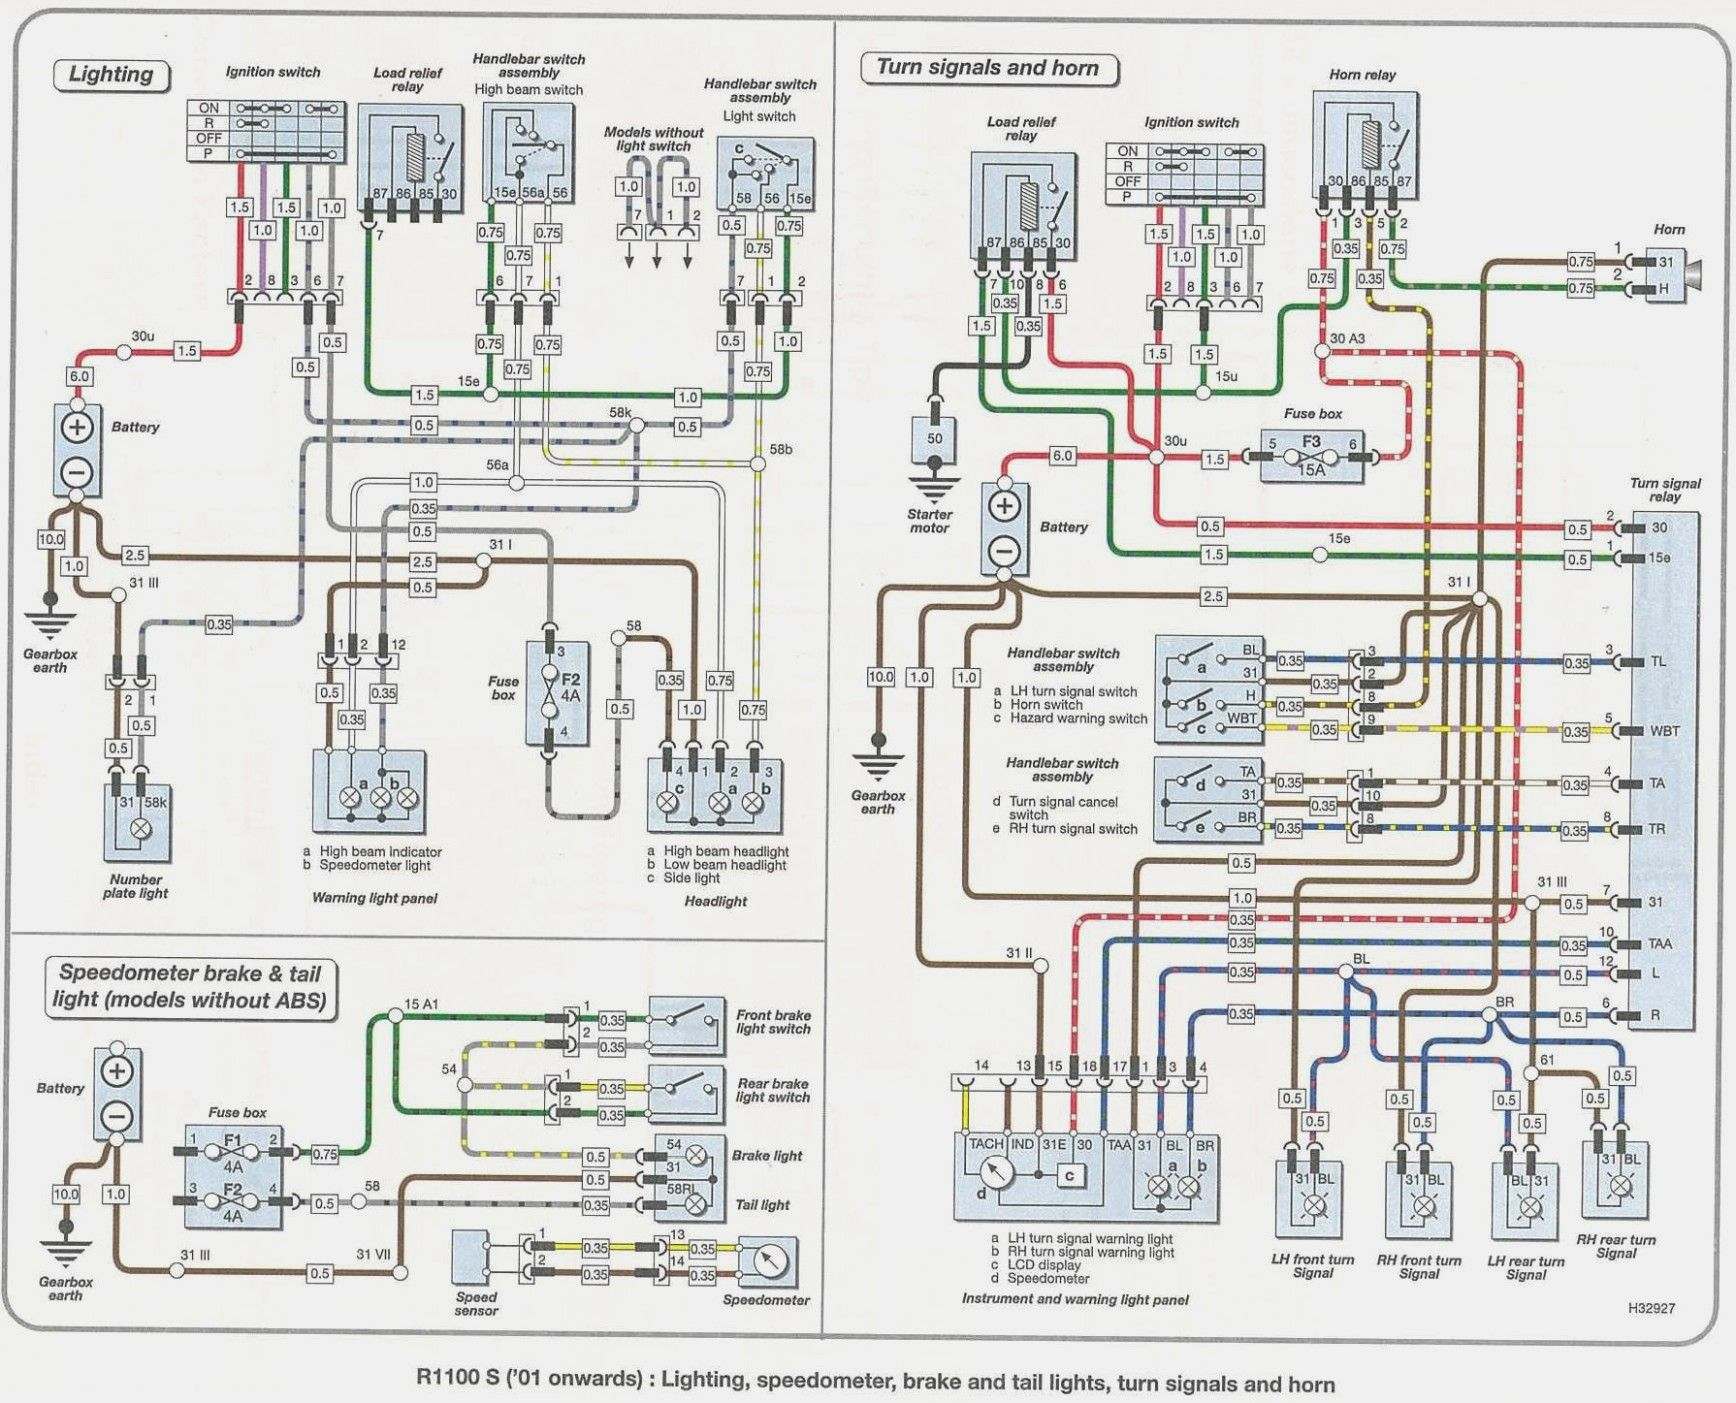 bmw 325i engine wiring diagrams | site wiring diagrams schedule  wiring diagram library